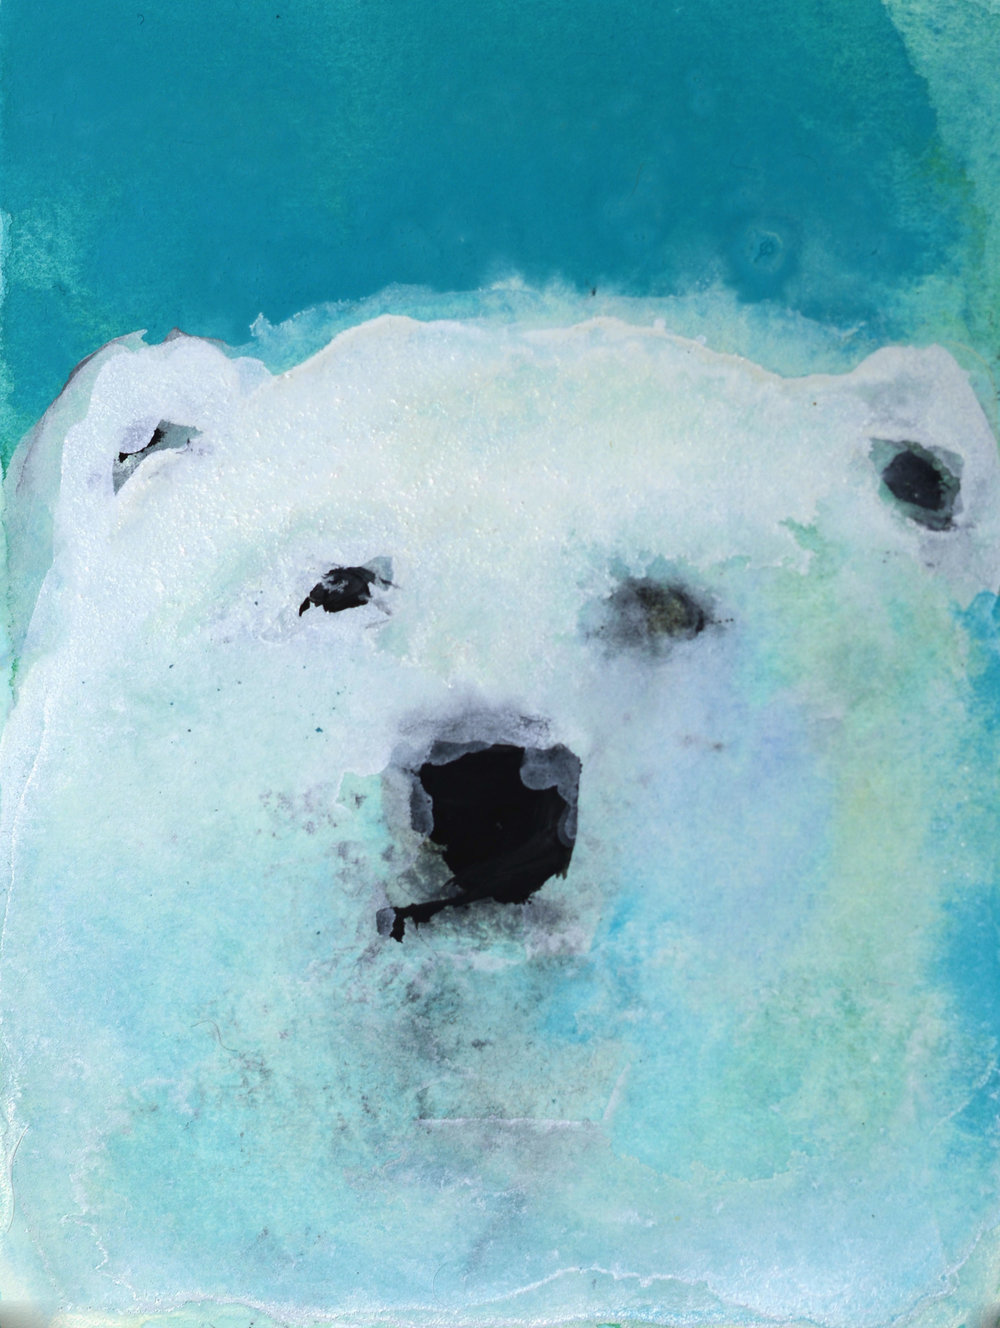 Rebecca_Kinkead_polar bear (on blue)_4x3 inset on 11x7.5 paper.jpg